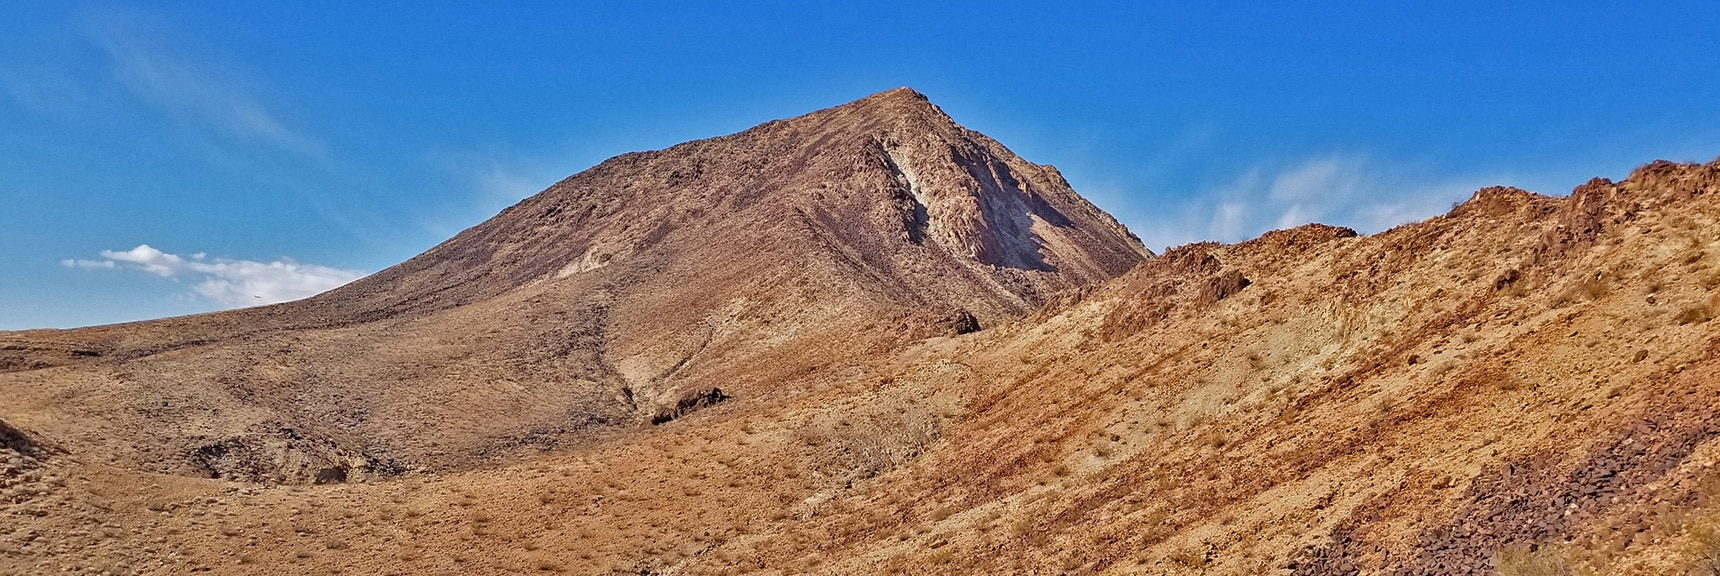 Closing In on the Base of Lava Butte | Lava Butte | Lake Mead National Recreation Area, Nevada